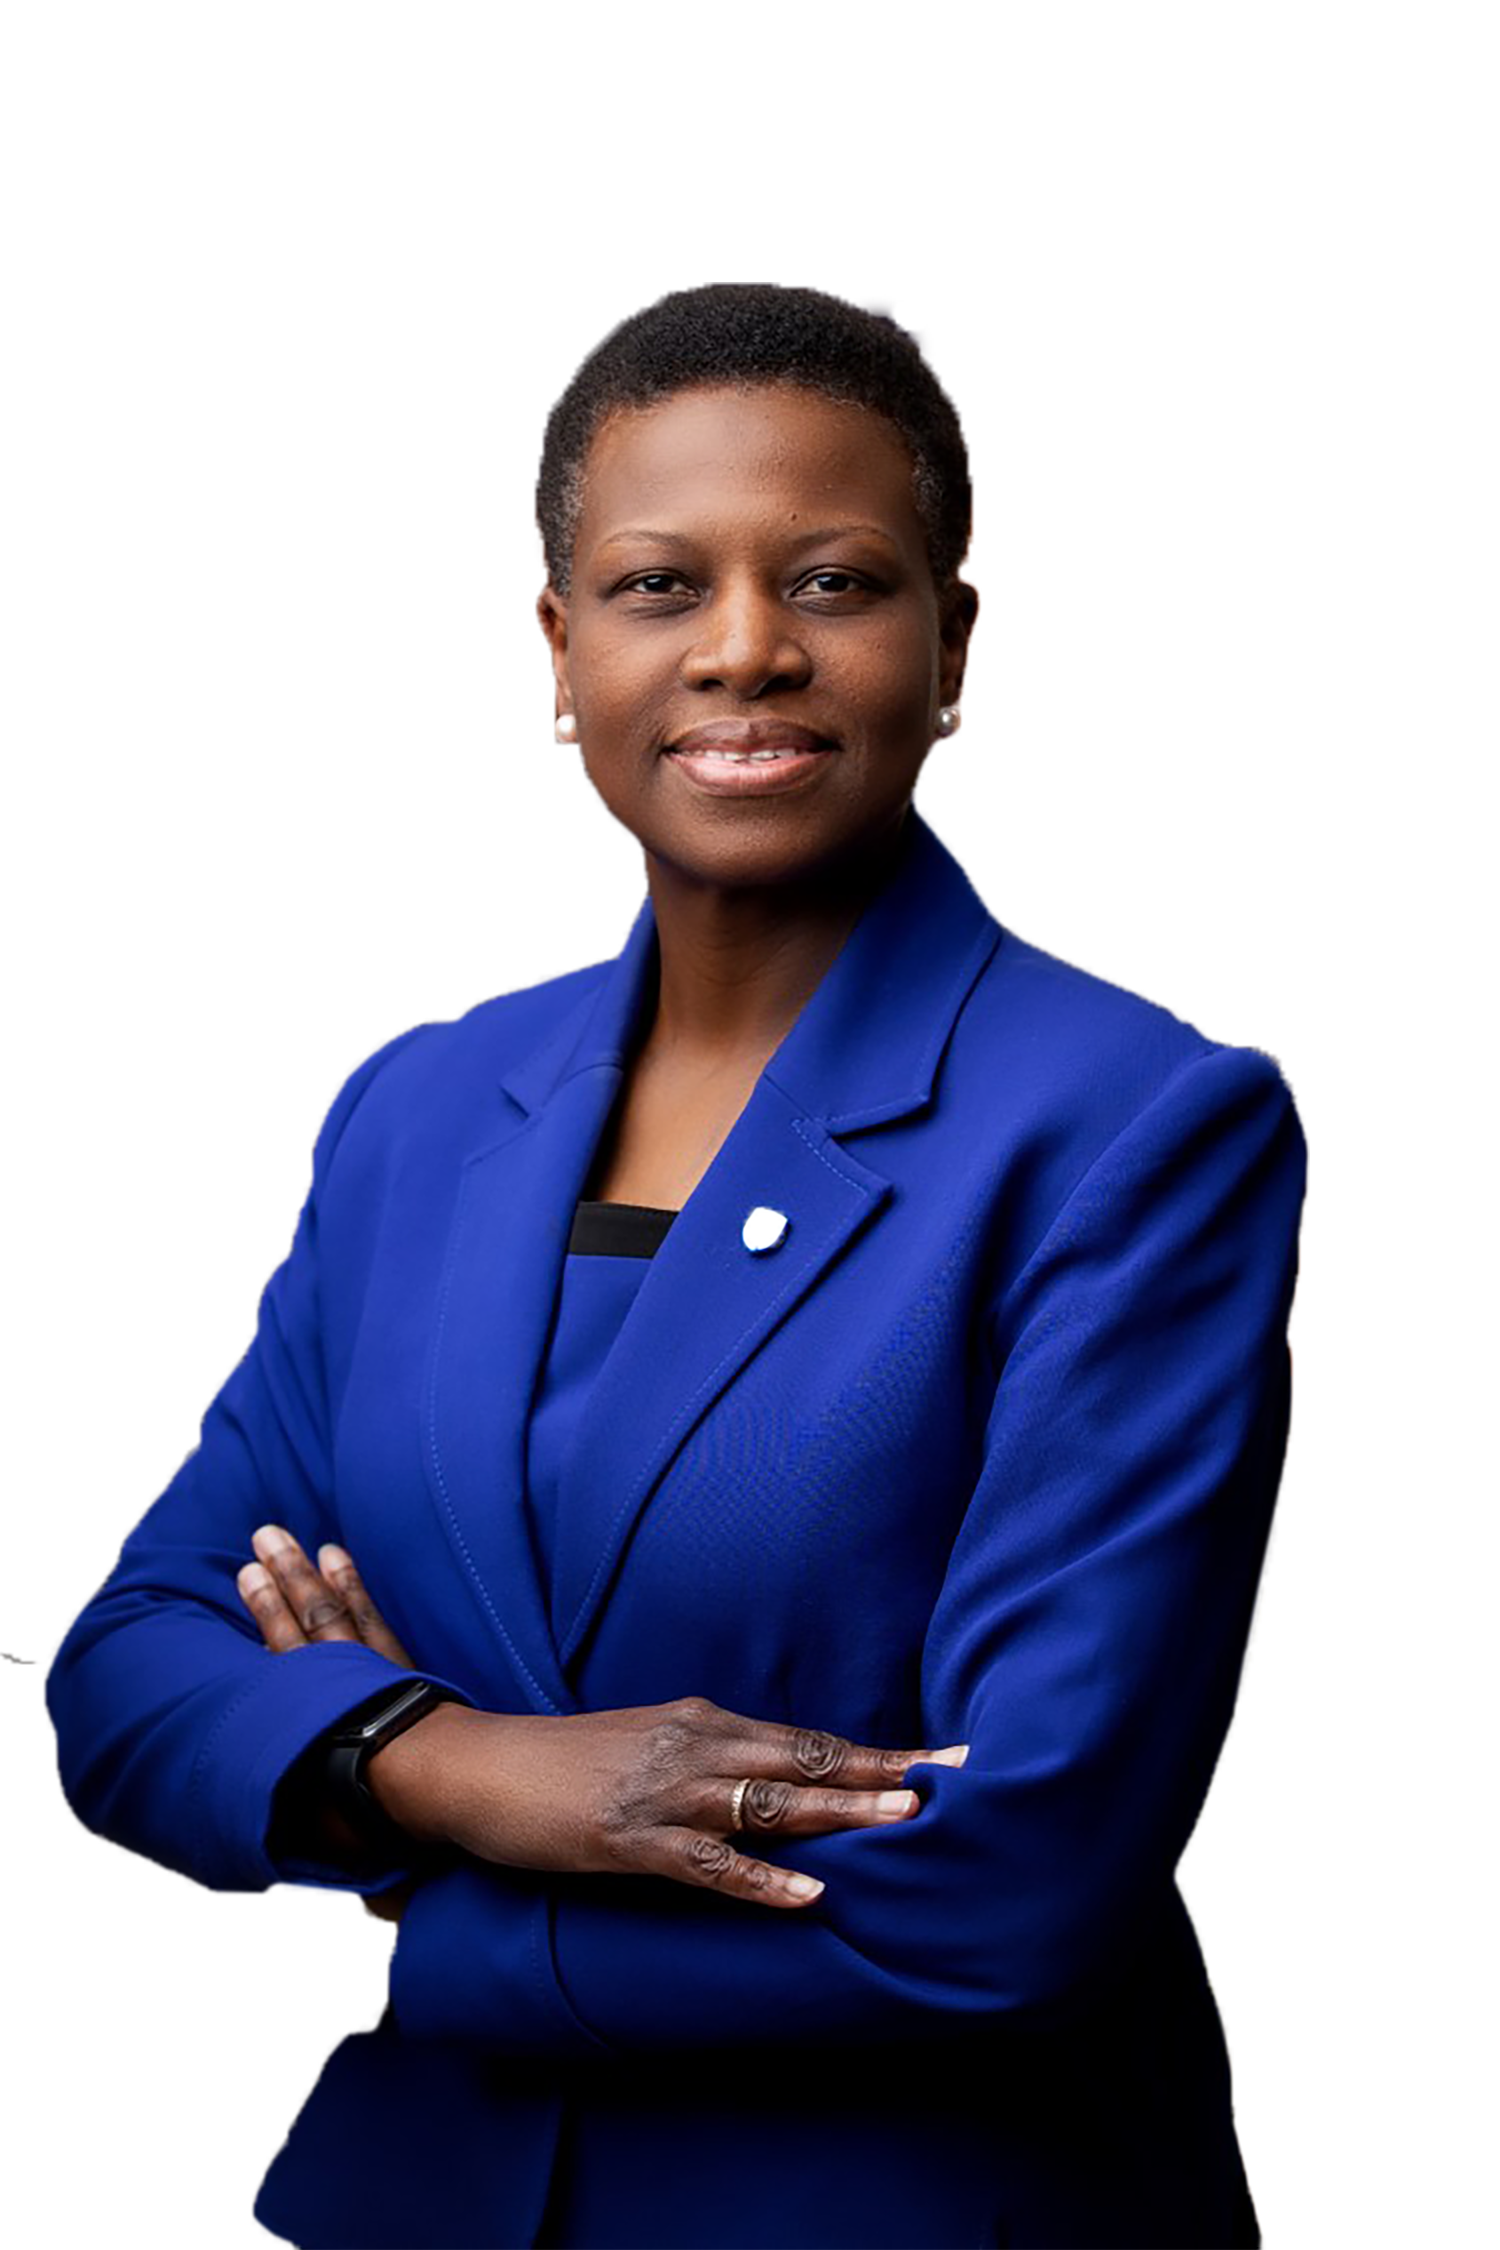 Sola David-Borha is Chief Executive of Africa Regions at Standard Bank Group